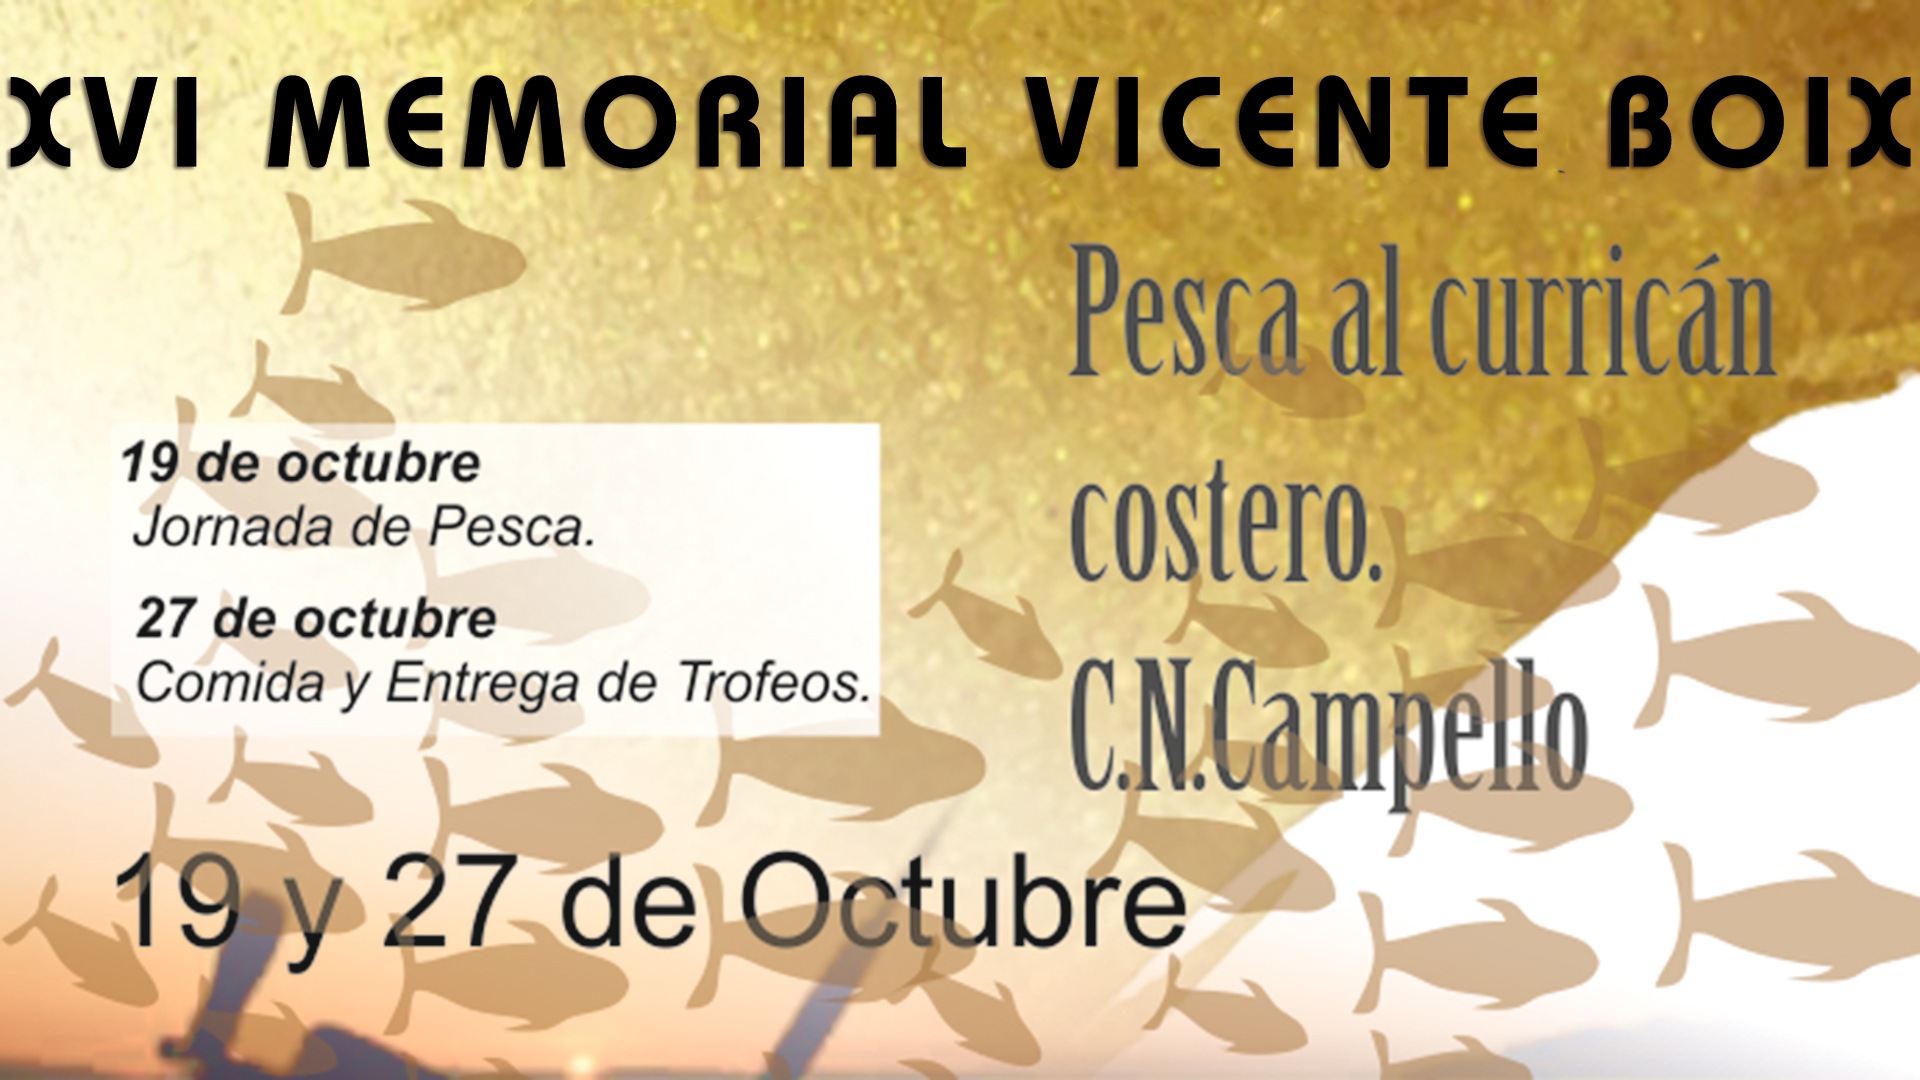 XVI Memorial Vicente Boix - Club Náutico Campello